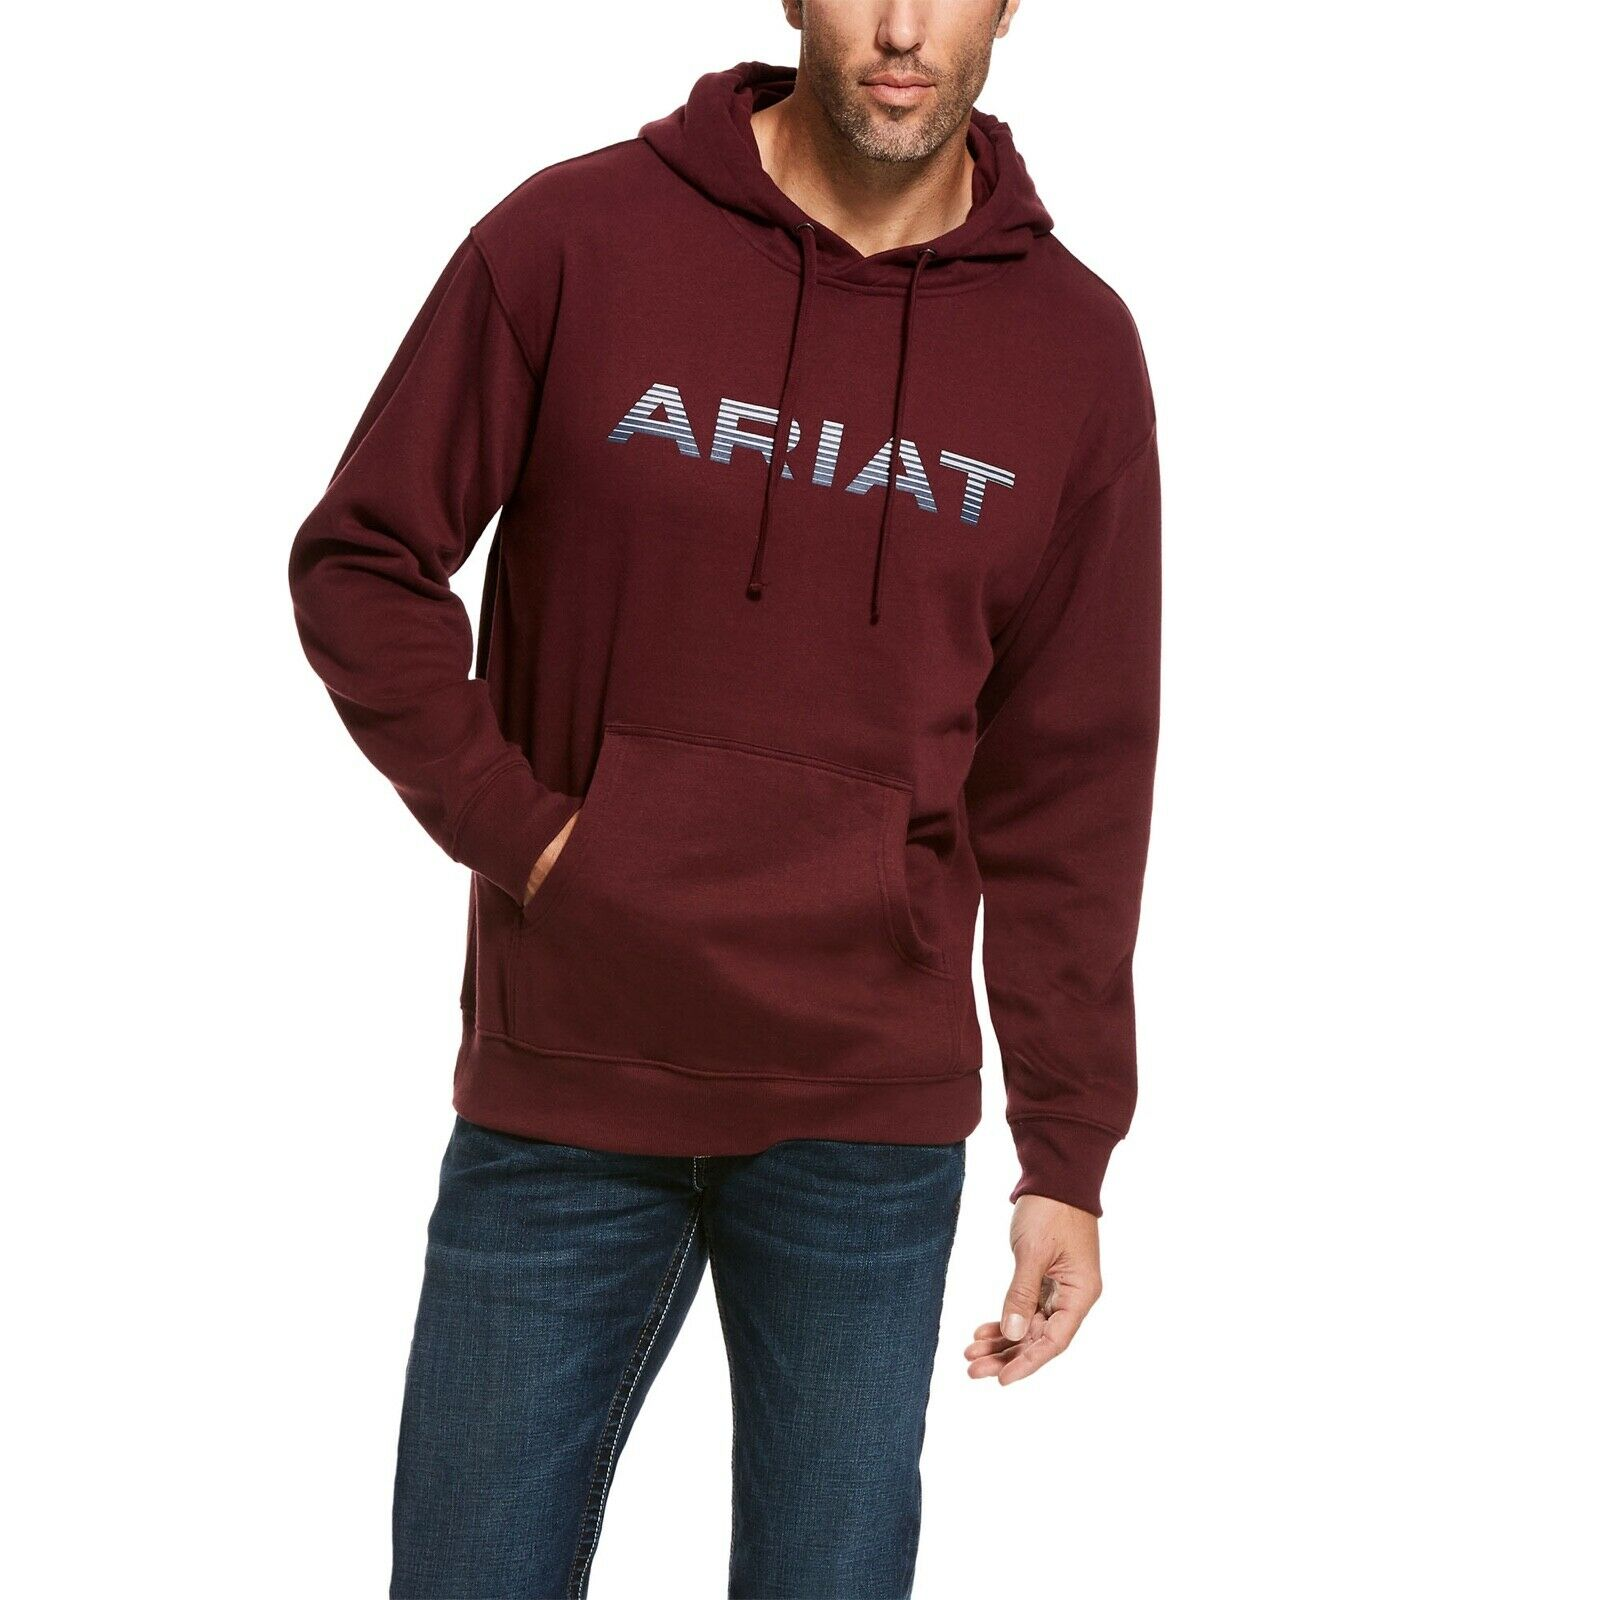 Ariat  Men's Ancho Chili Red Graphic Logo Hoodie Sweatshirt 10027977